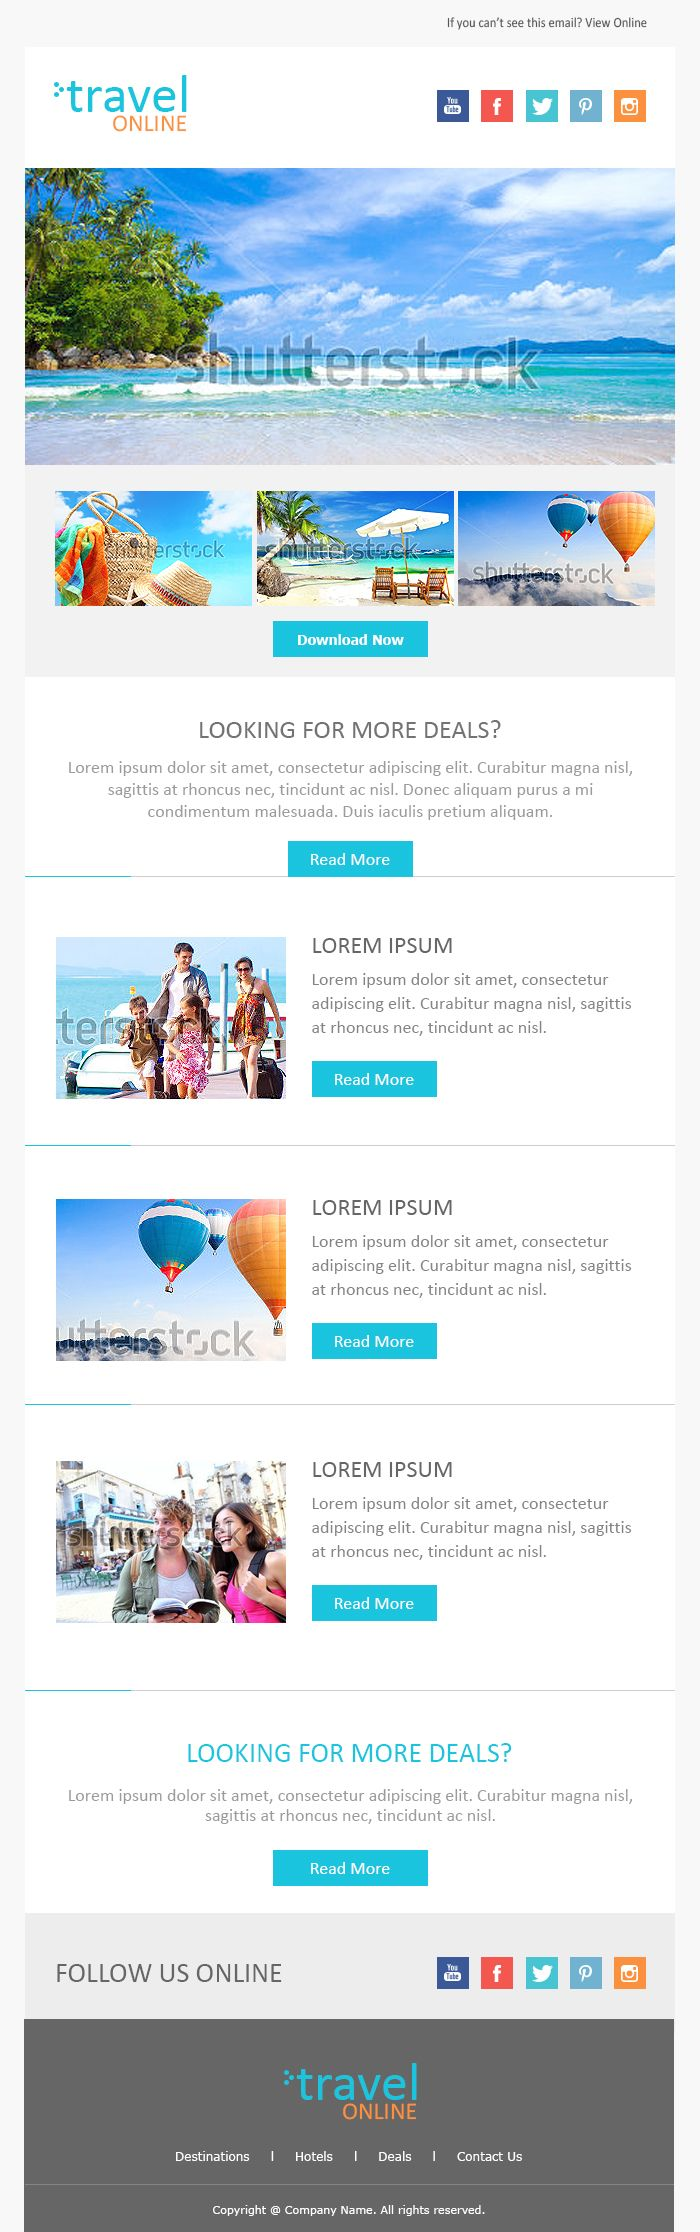 Email Newsletter Examples, Business Email Templates Sample  Newsletter Sample Templates